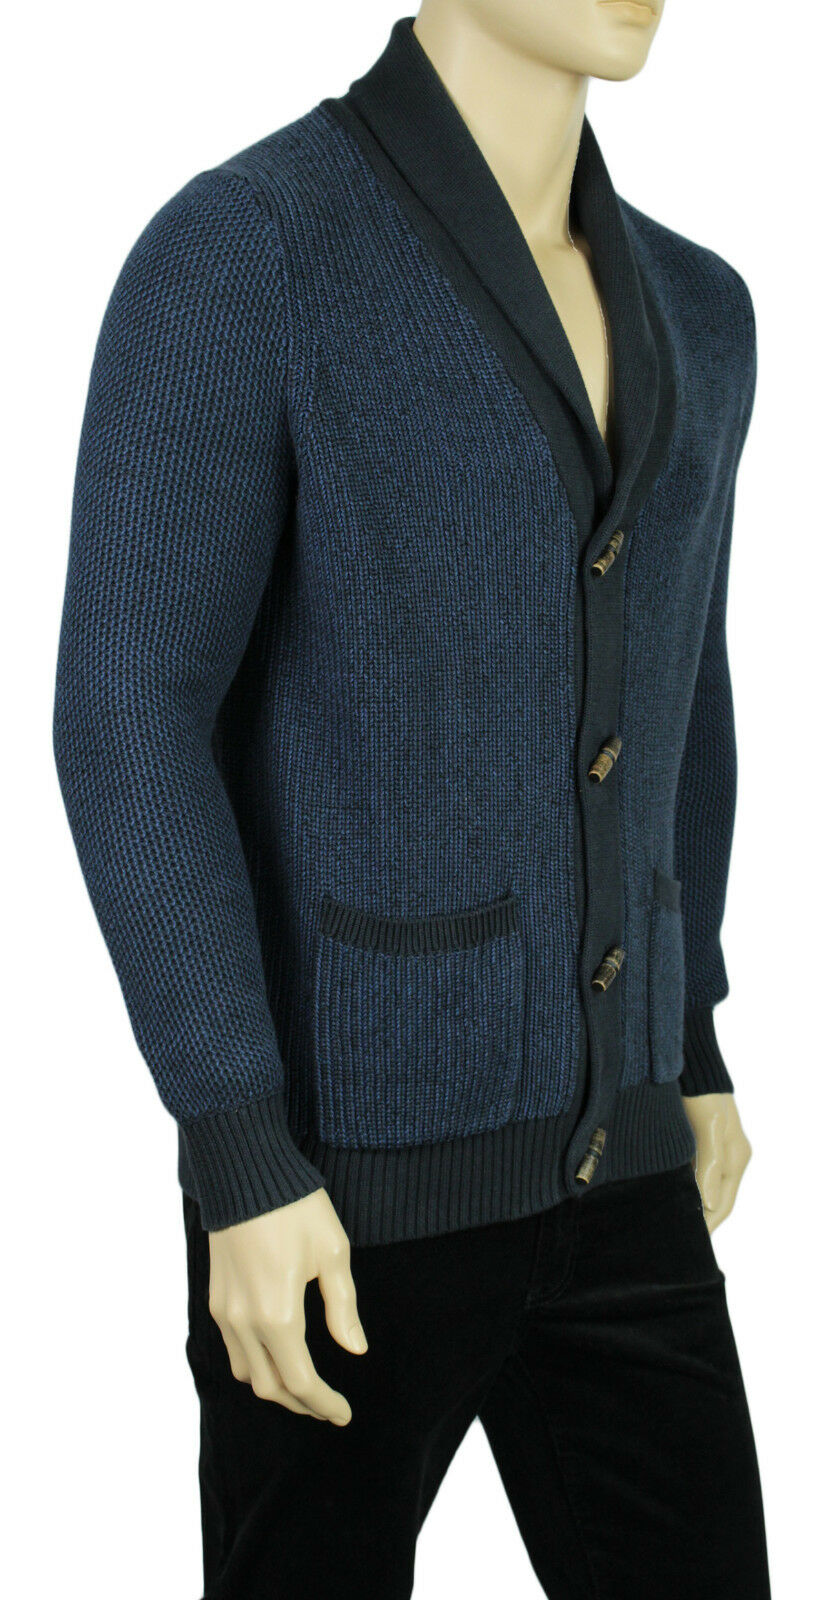 Nautica Navy Blue Mens Size Small S Toggle-button Sweater Cardigan ...